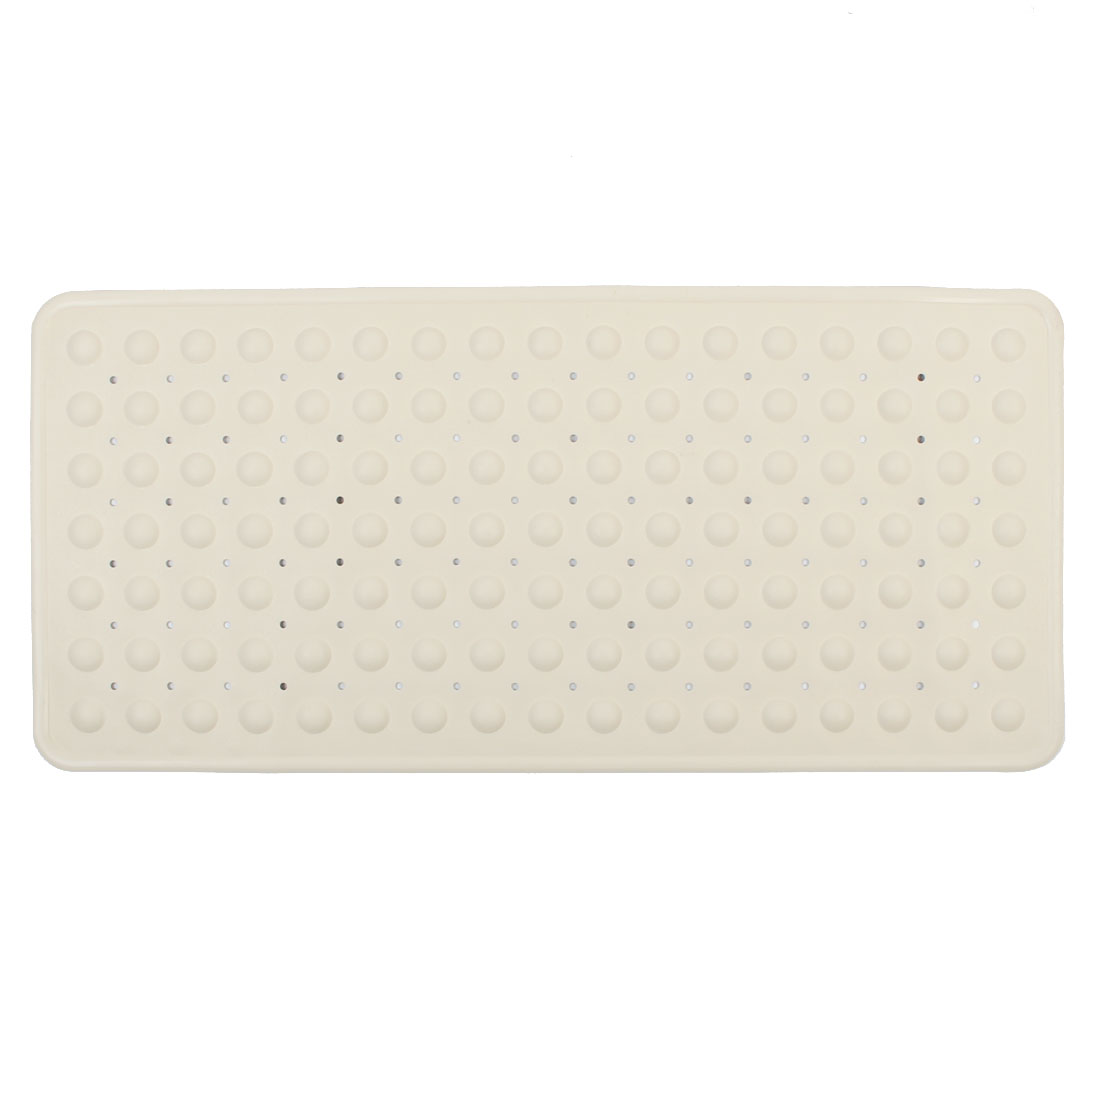 Hotel Bathroom Rubber Slip-Resistant Suction Floor Bath Mat Beige 35cm x 75cm